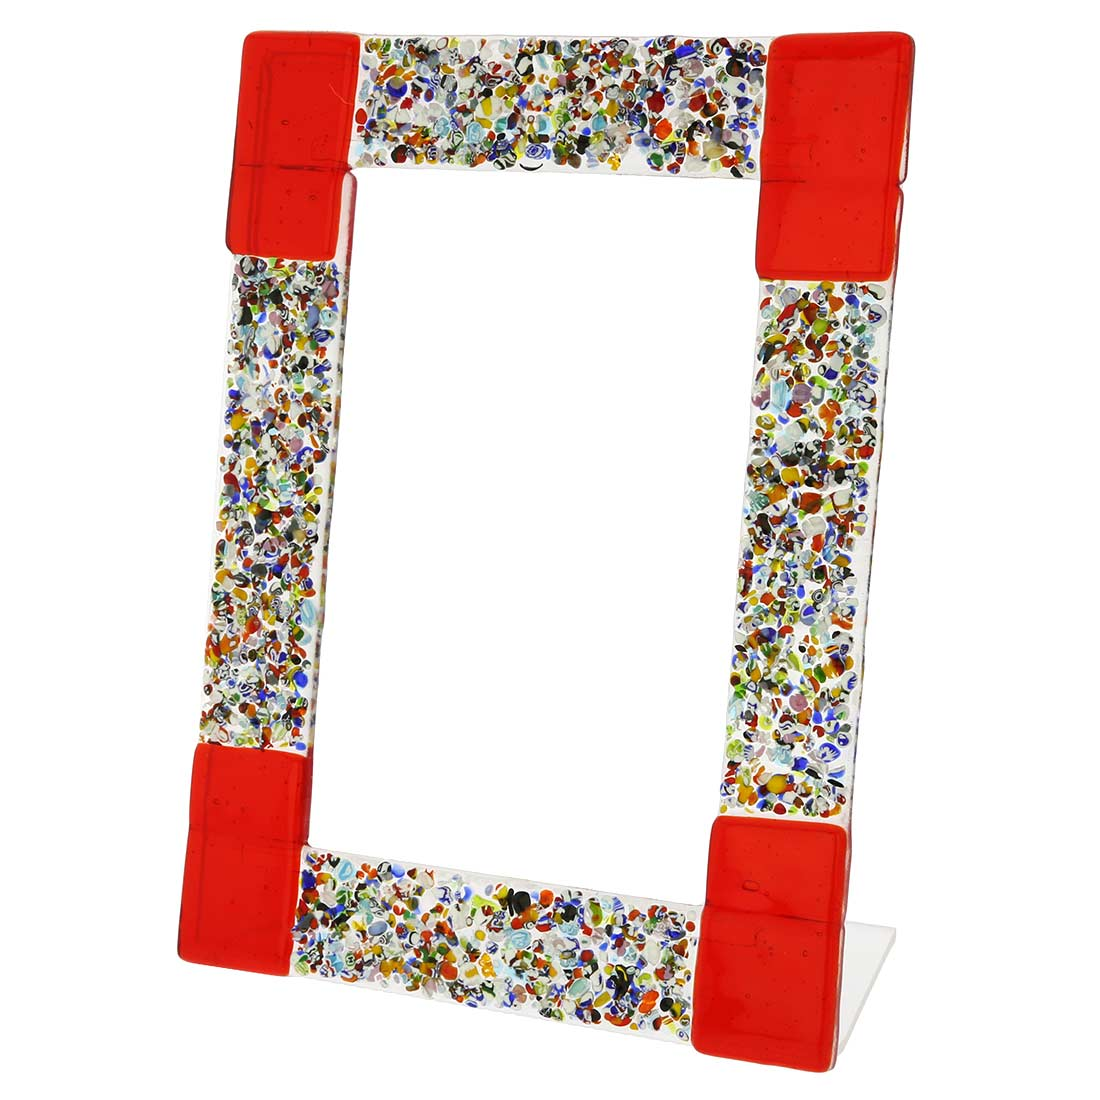 Murano Klimt Photo Frame - Red 4x6 inch